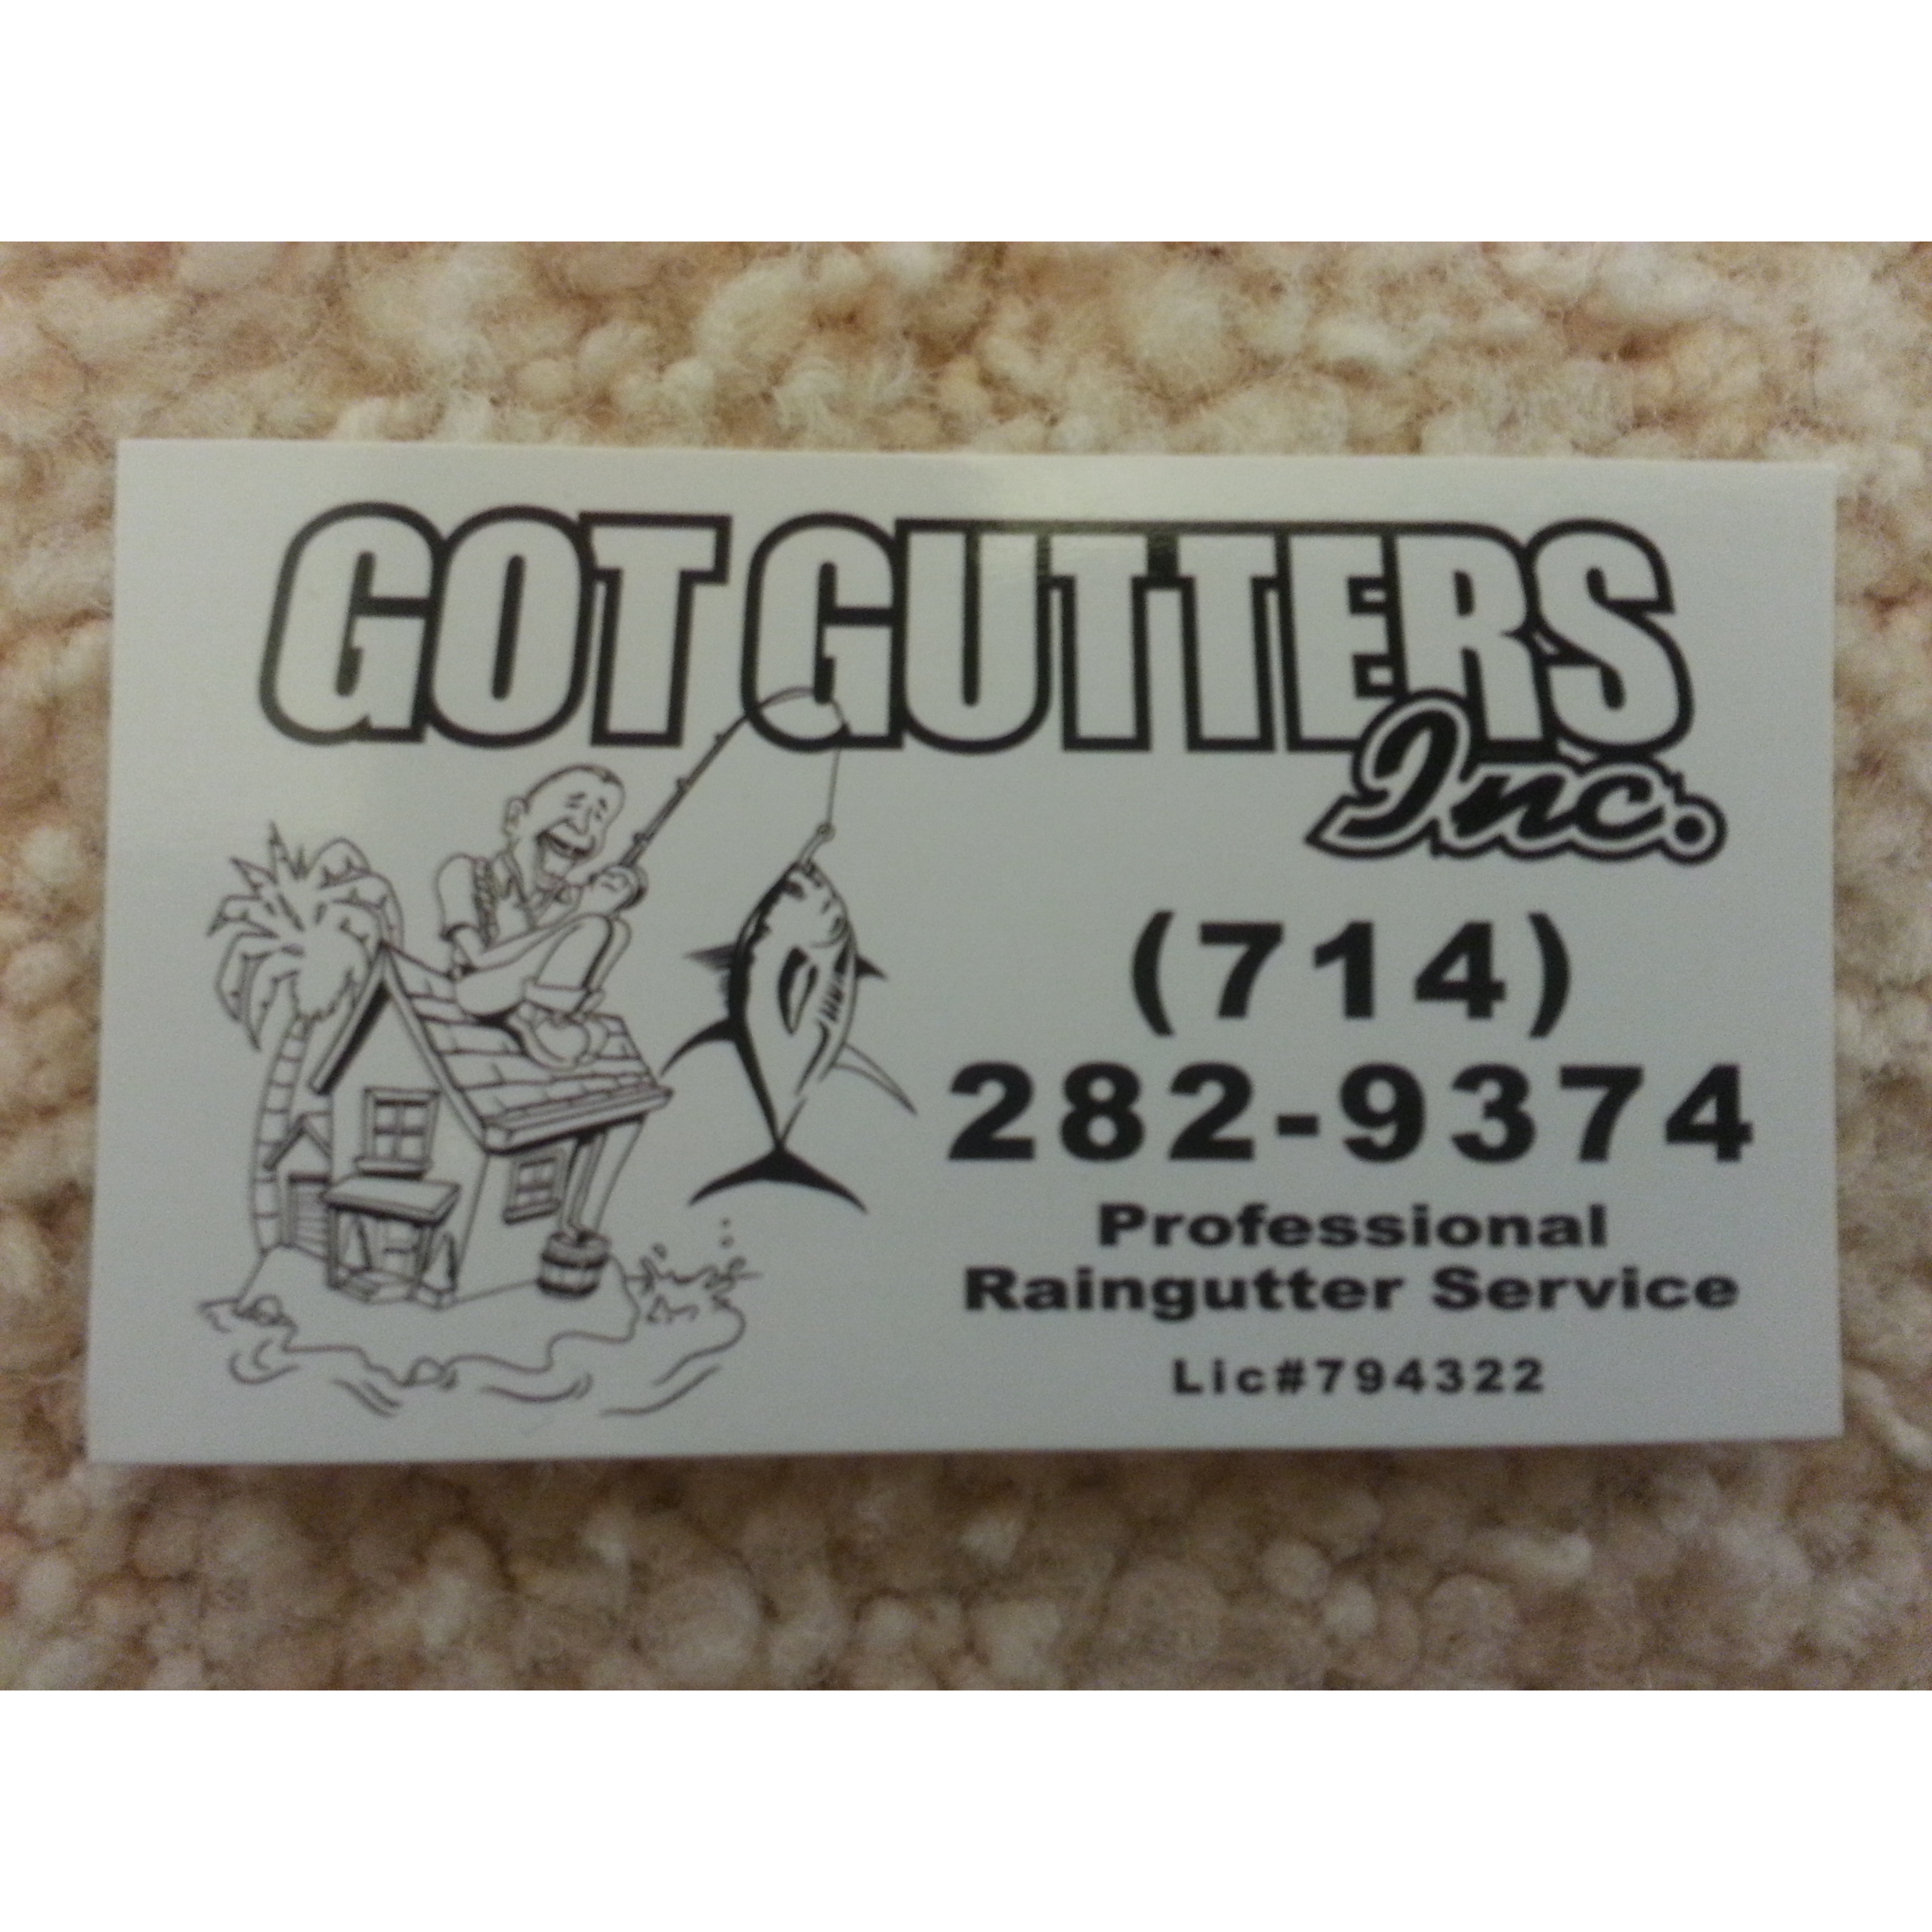 Got Gutters Inc Coupons Near Me In Yorba Linda 8coupons